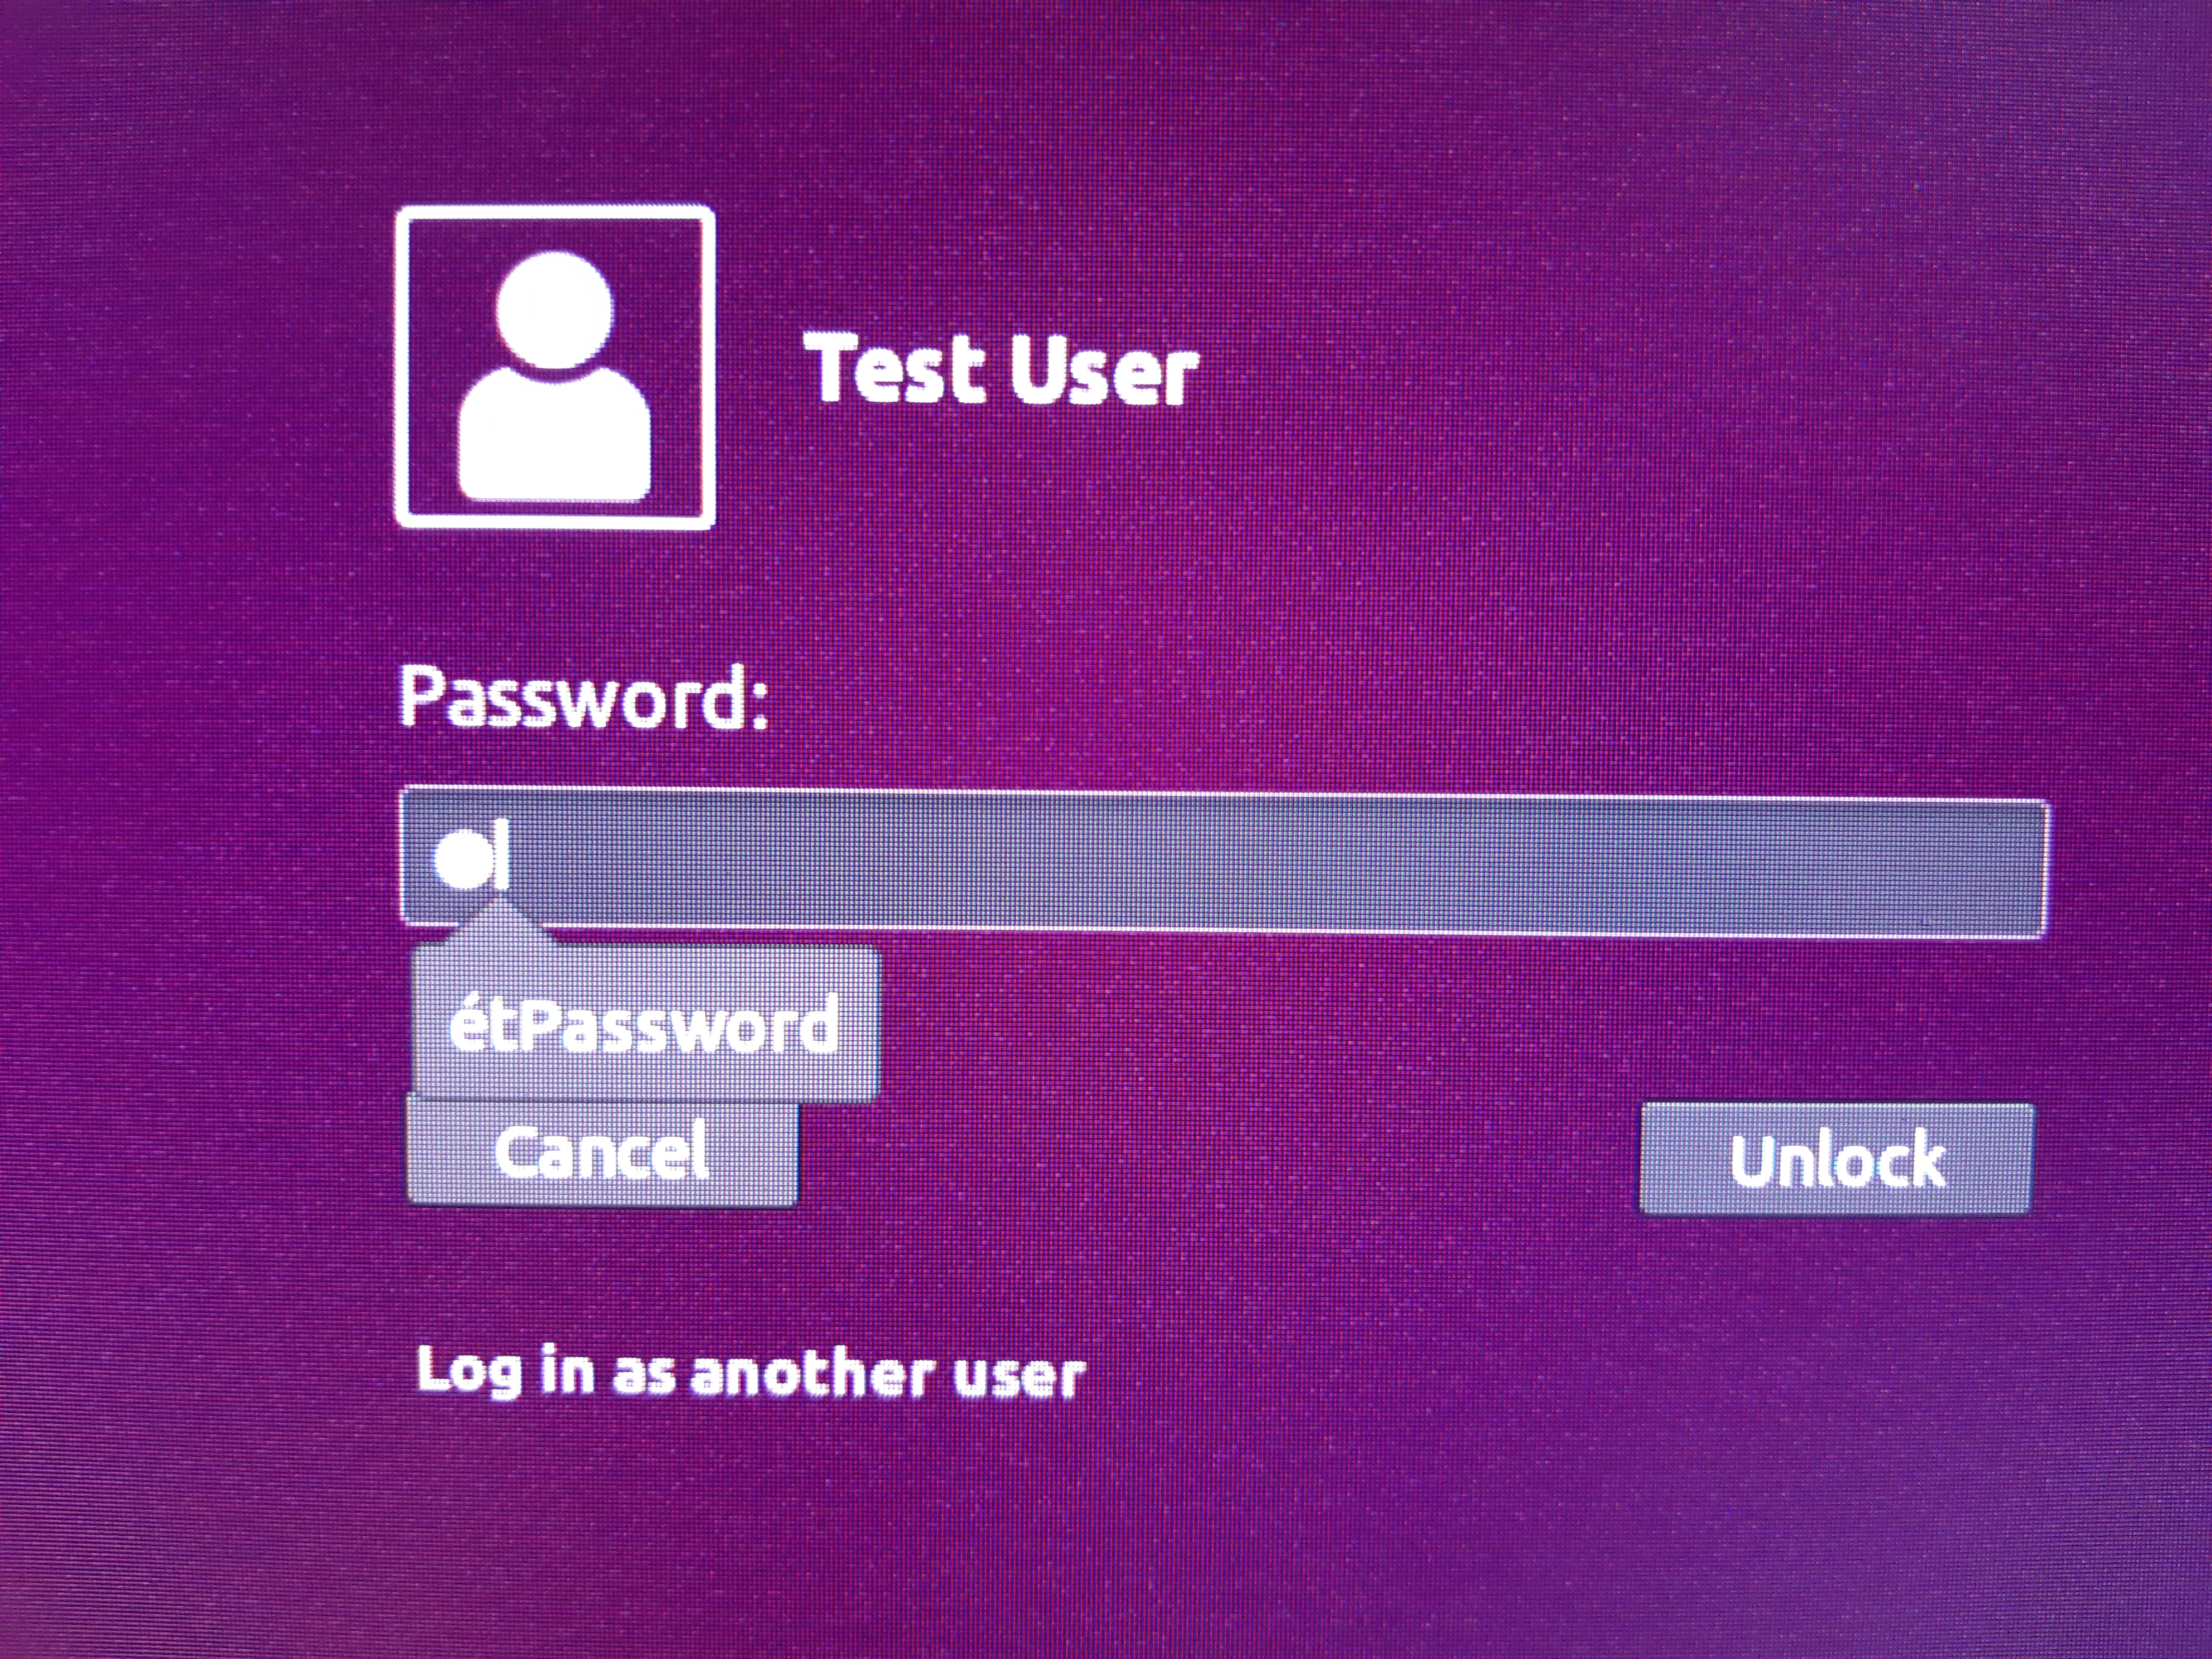 Ubuntu 18 Ibus preedit shows on user password at gnome-shell